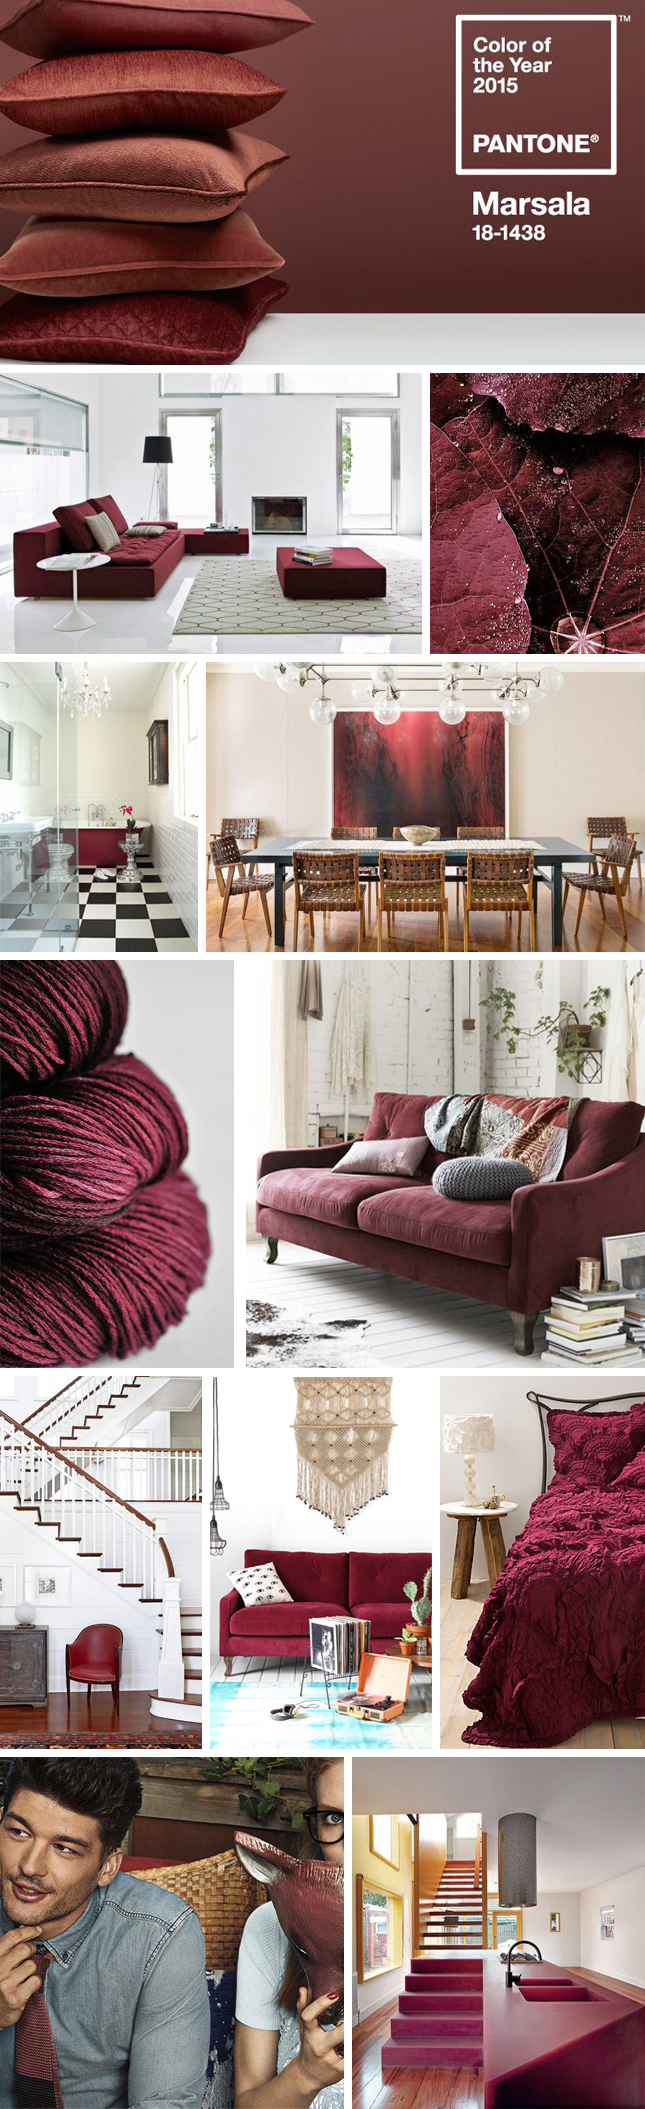 decoradornet-cor-do-ano-pantone-marsala-02